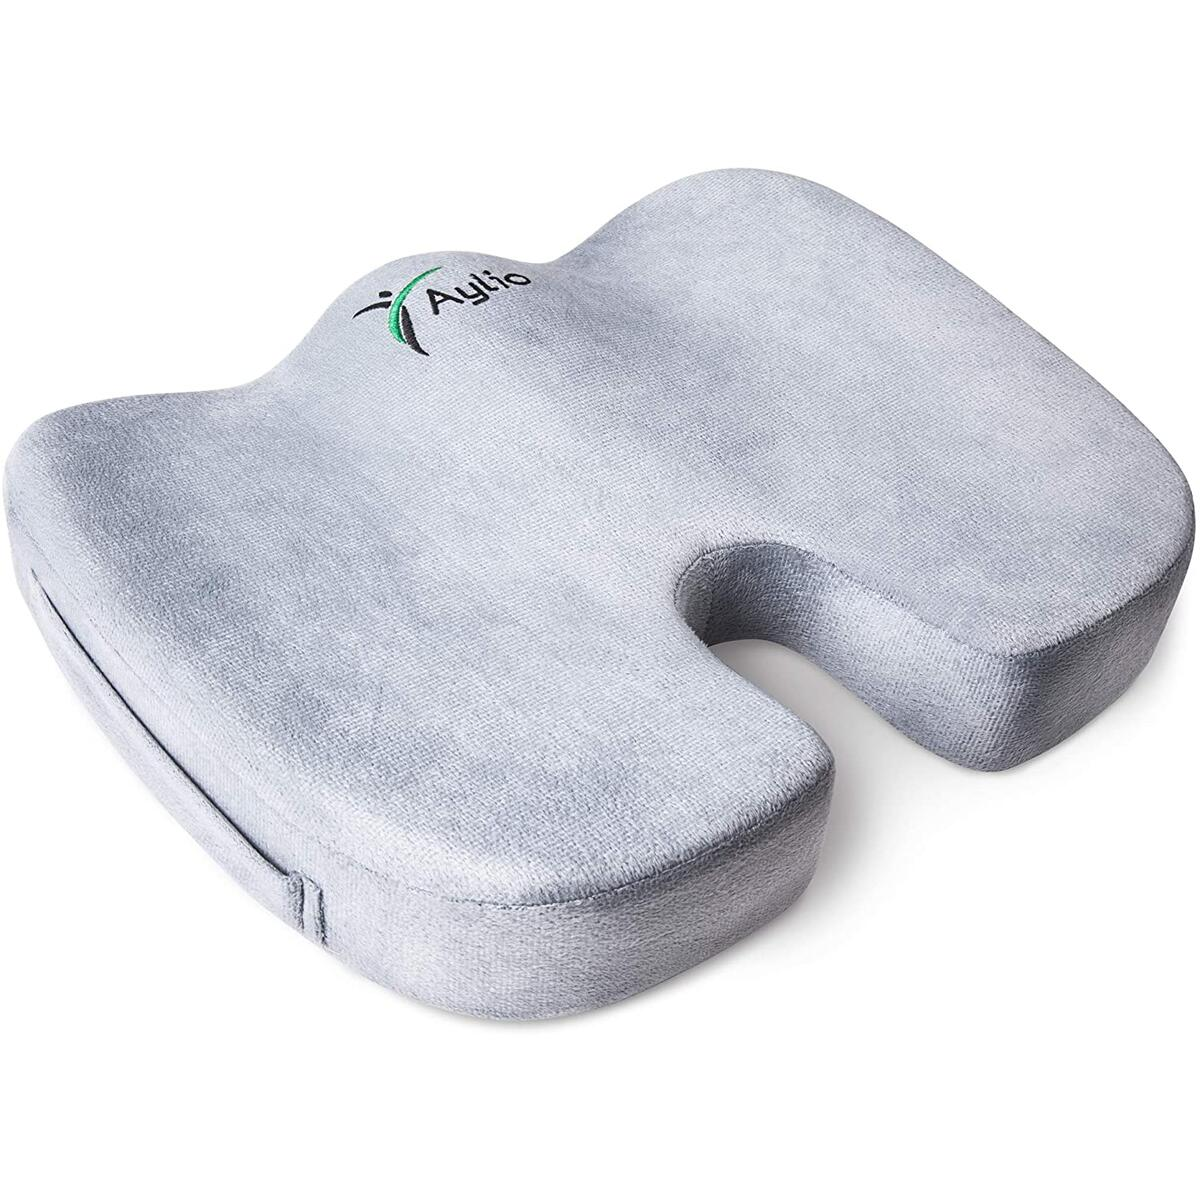 Coccyx Cushion for Lower Back Pain